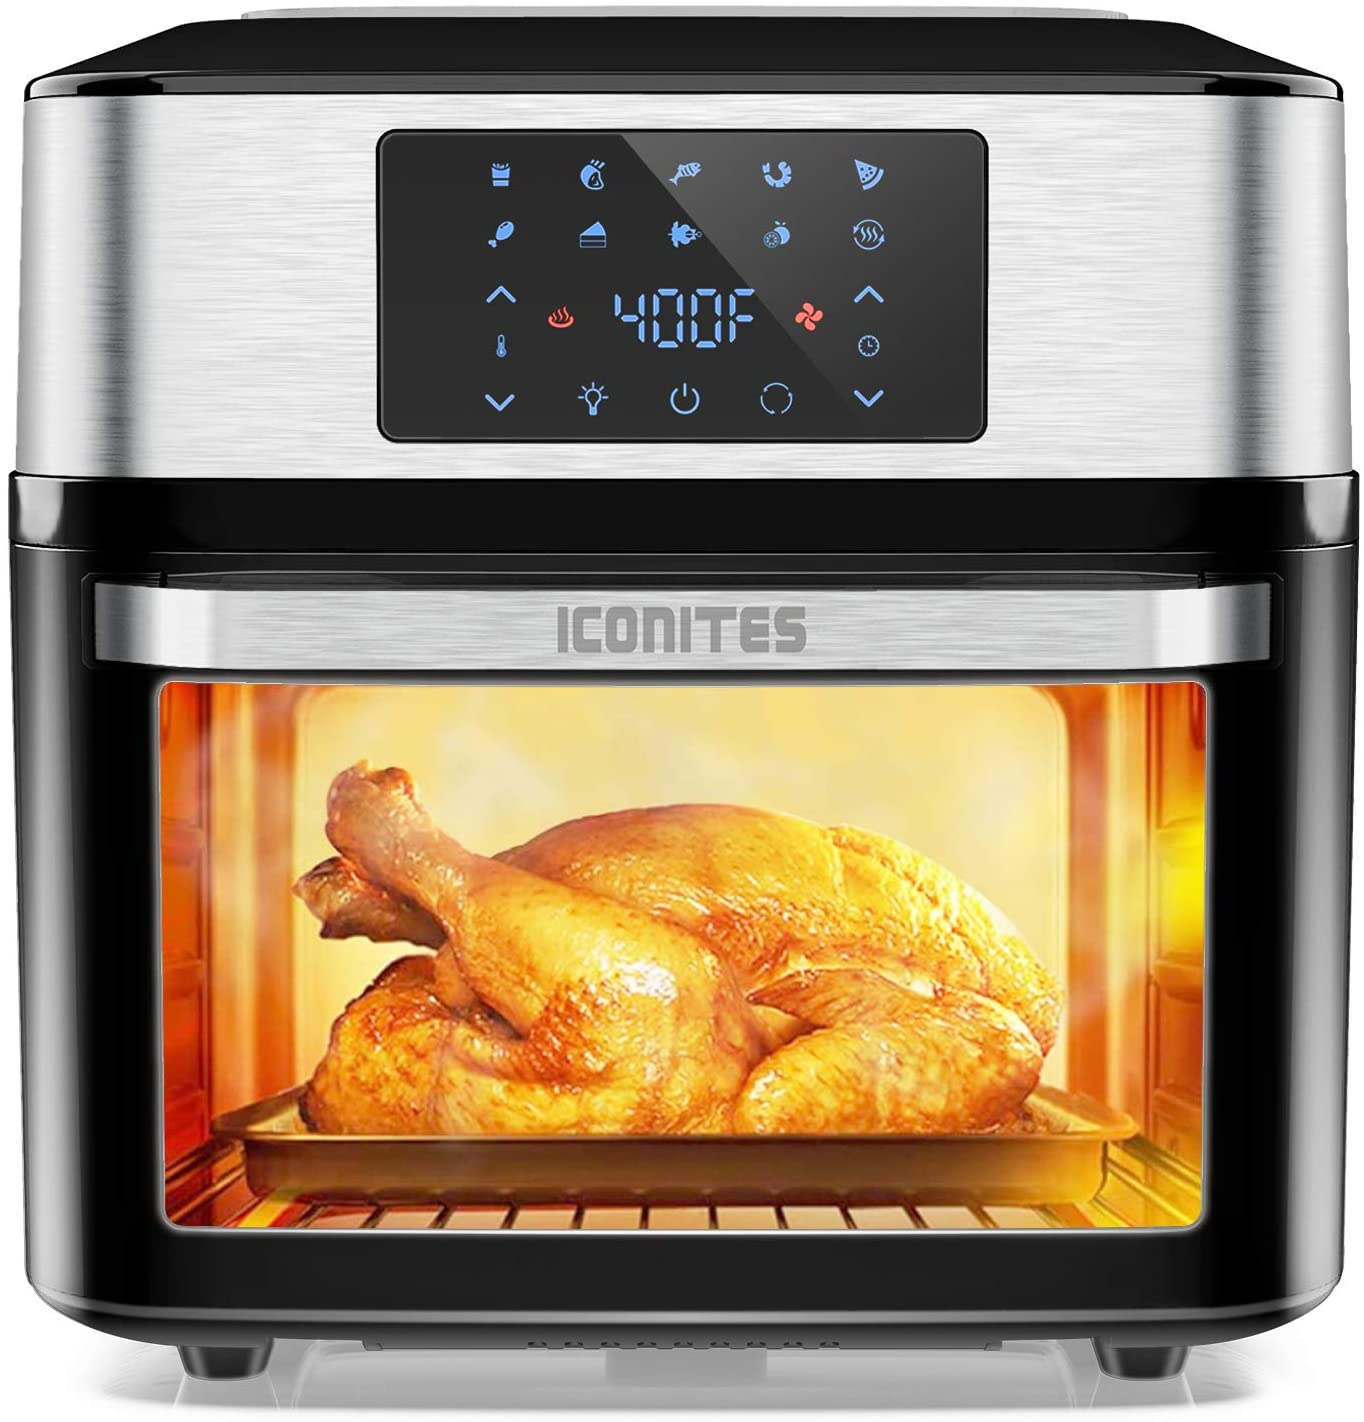 Iconites 10-In-1 Air Fryer Oven